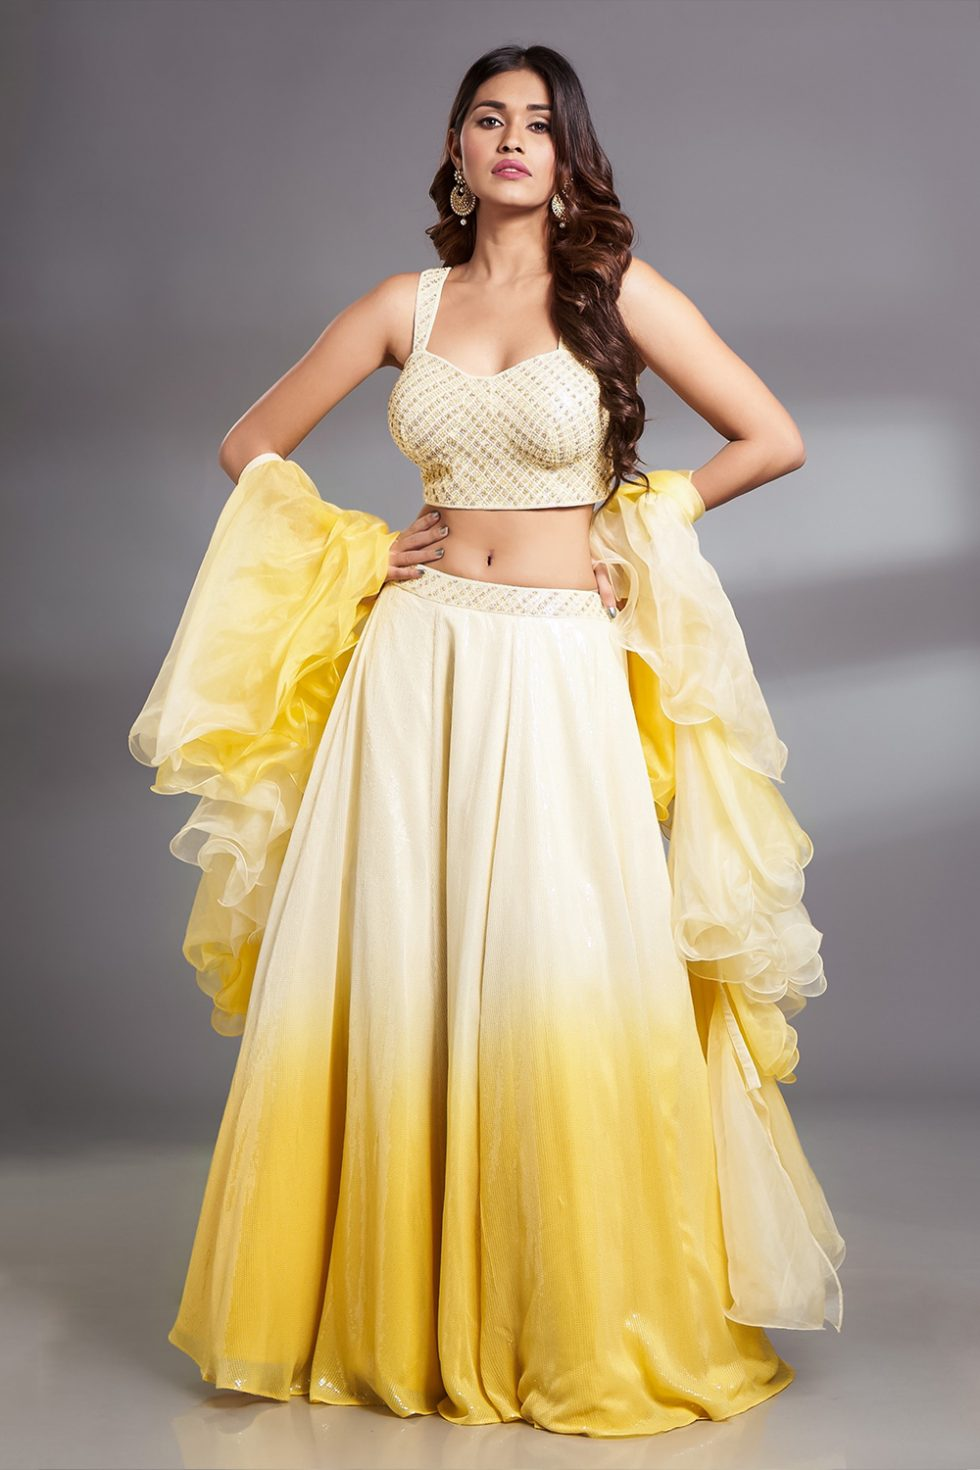 Yellow lehenga set with a handwork blouse, paani sequin pastel to sunshine yellow ombré skirt and ombré ruffled dupatta.